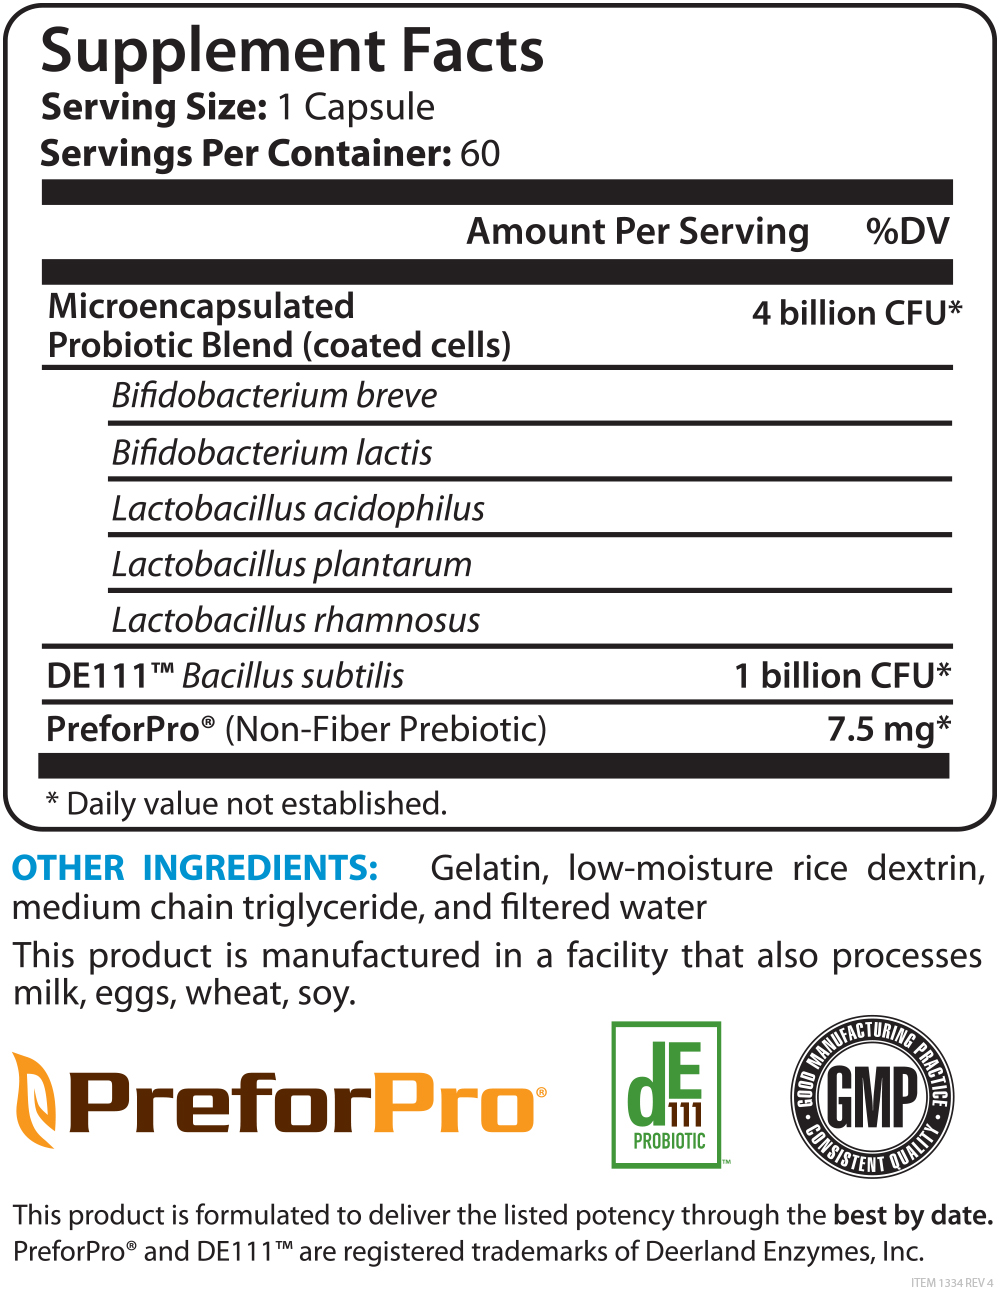 Pro-X10 Supplement Facts